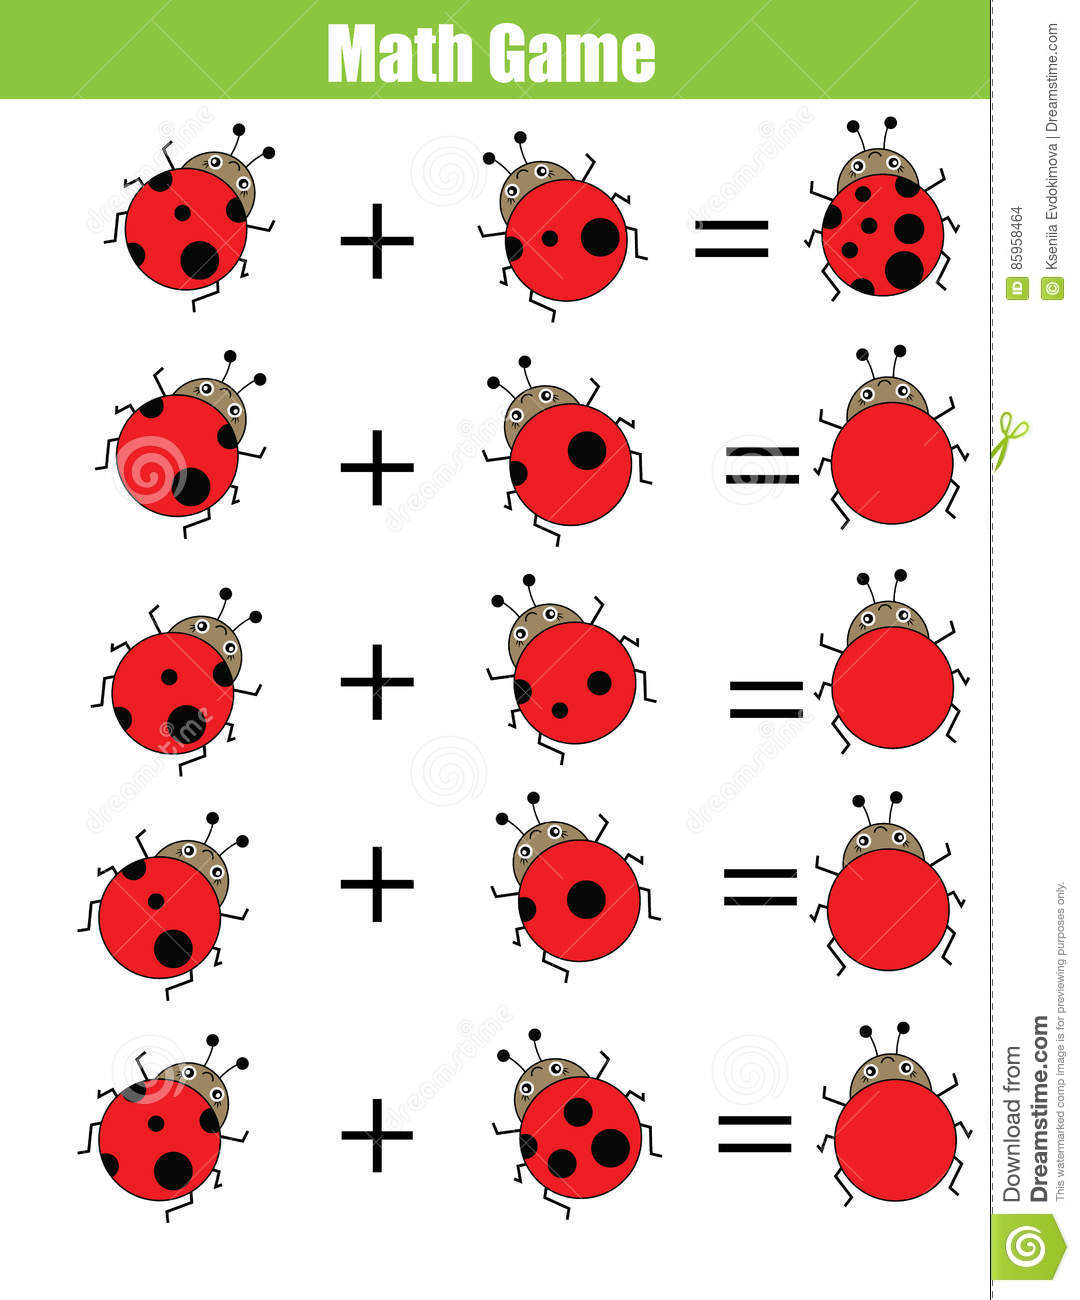 Math Educational Counting Game For Children Addition Worksheet Calculate The Ladybug Dots